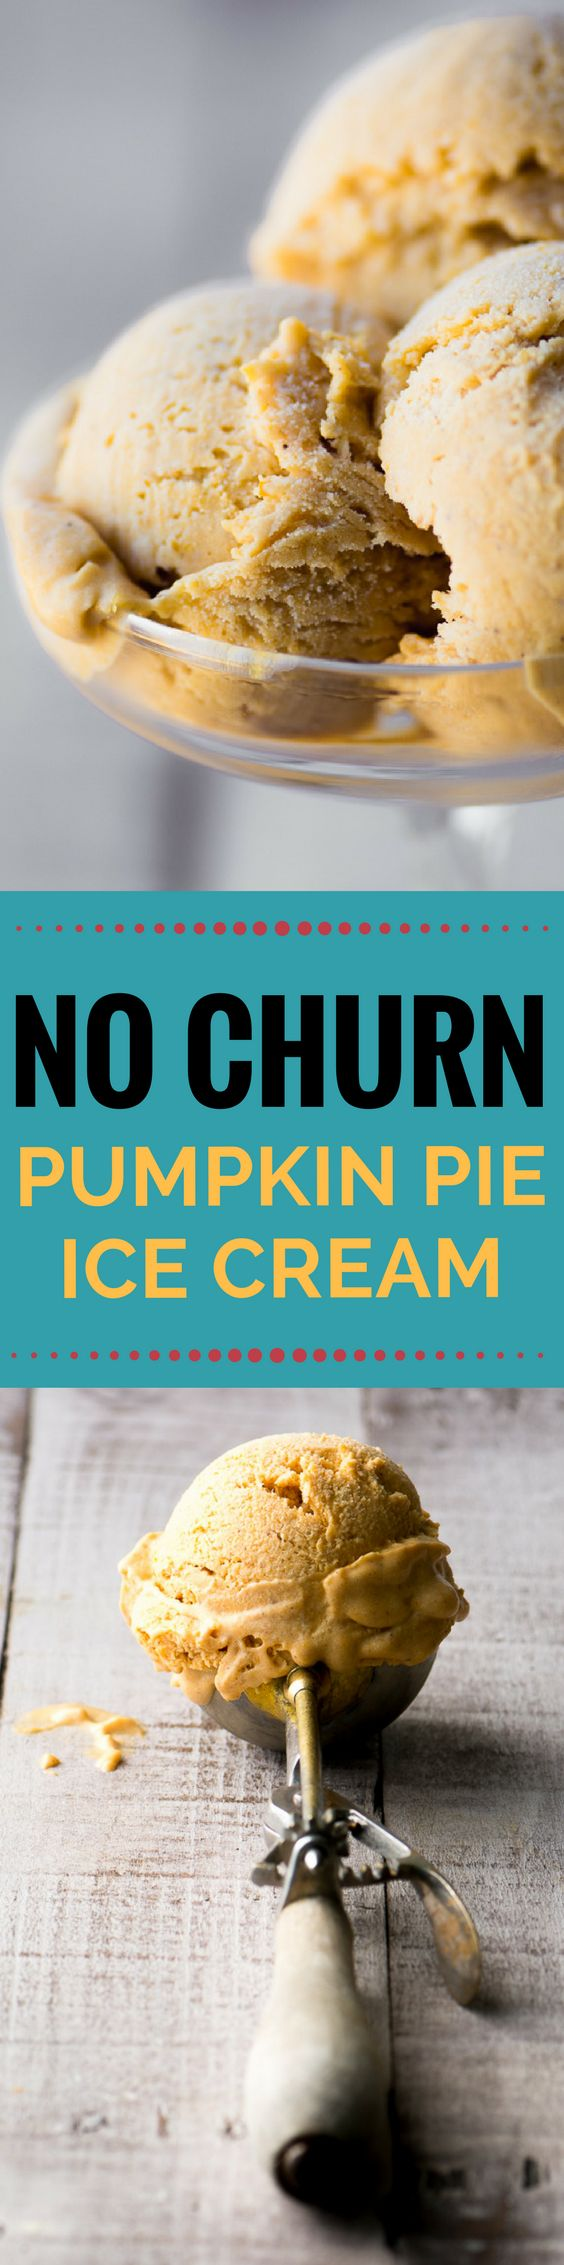 No Churn Pumpkin Pie Ice Cream is always a big hit at the holidays! ~ theviewfromgreatisland.com